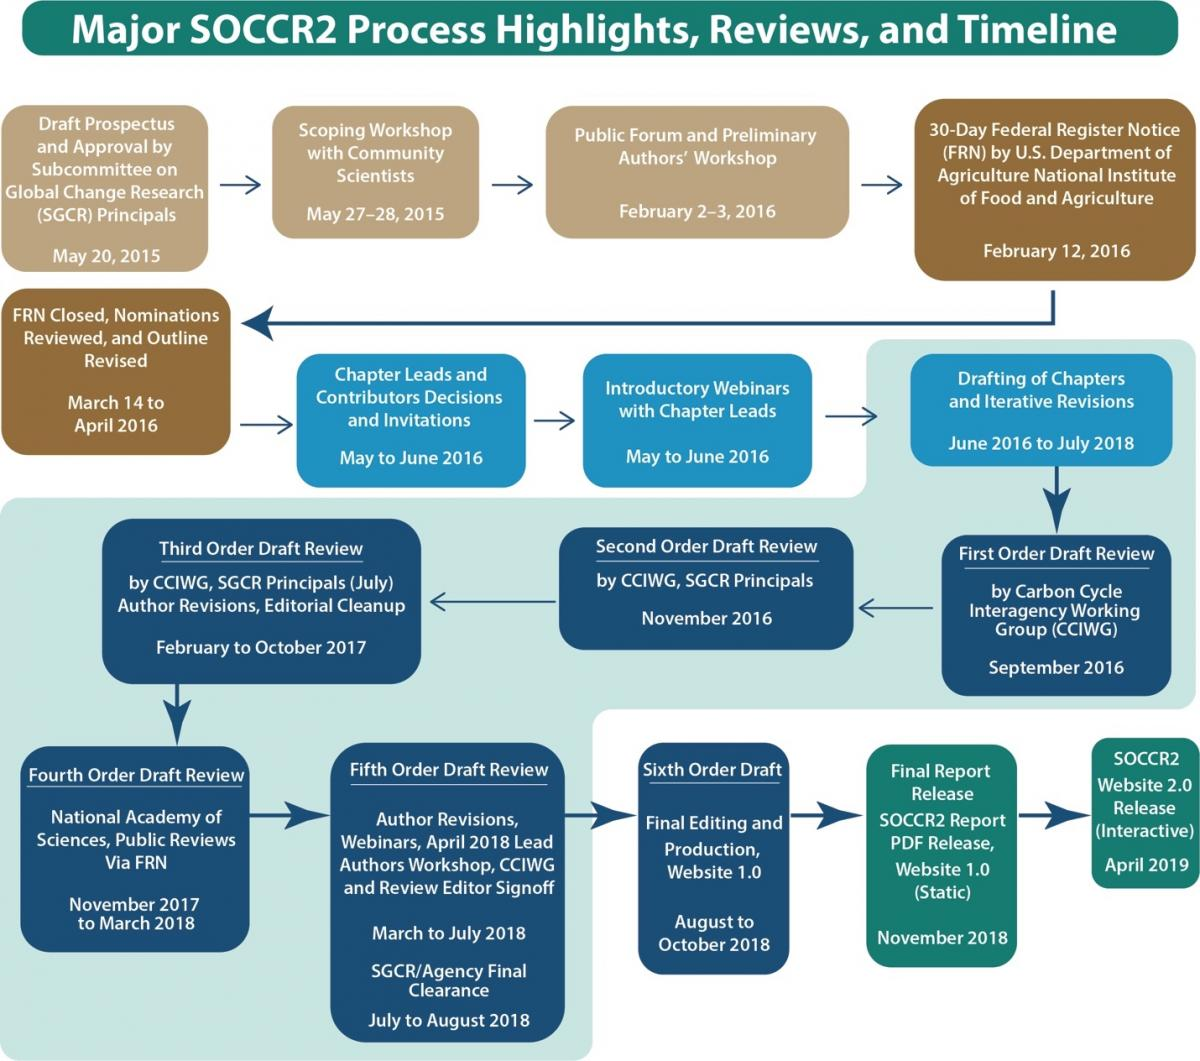 Major SOCCR2 milestones and planned next steps (as of September 2018, subject to change)